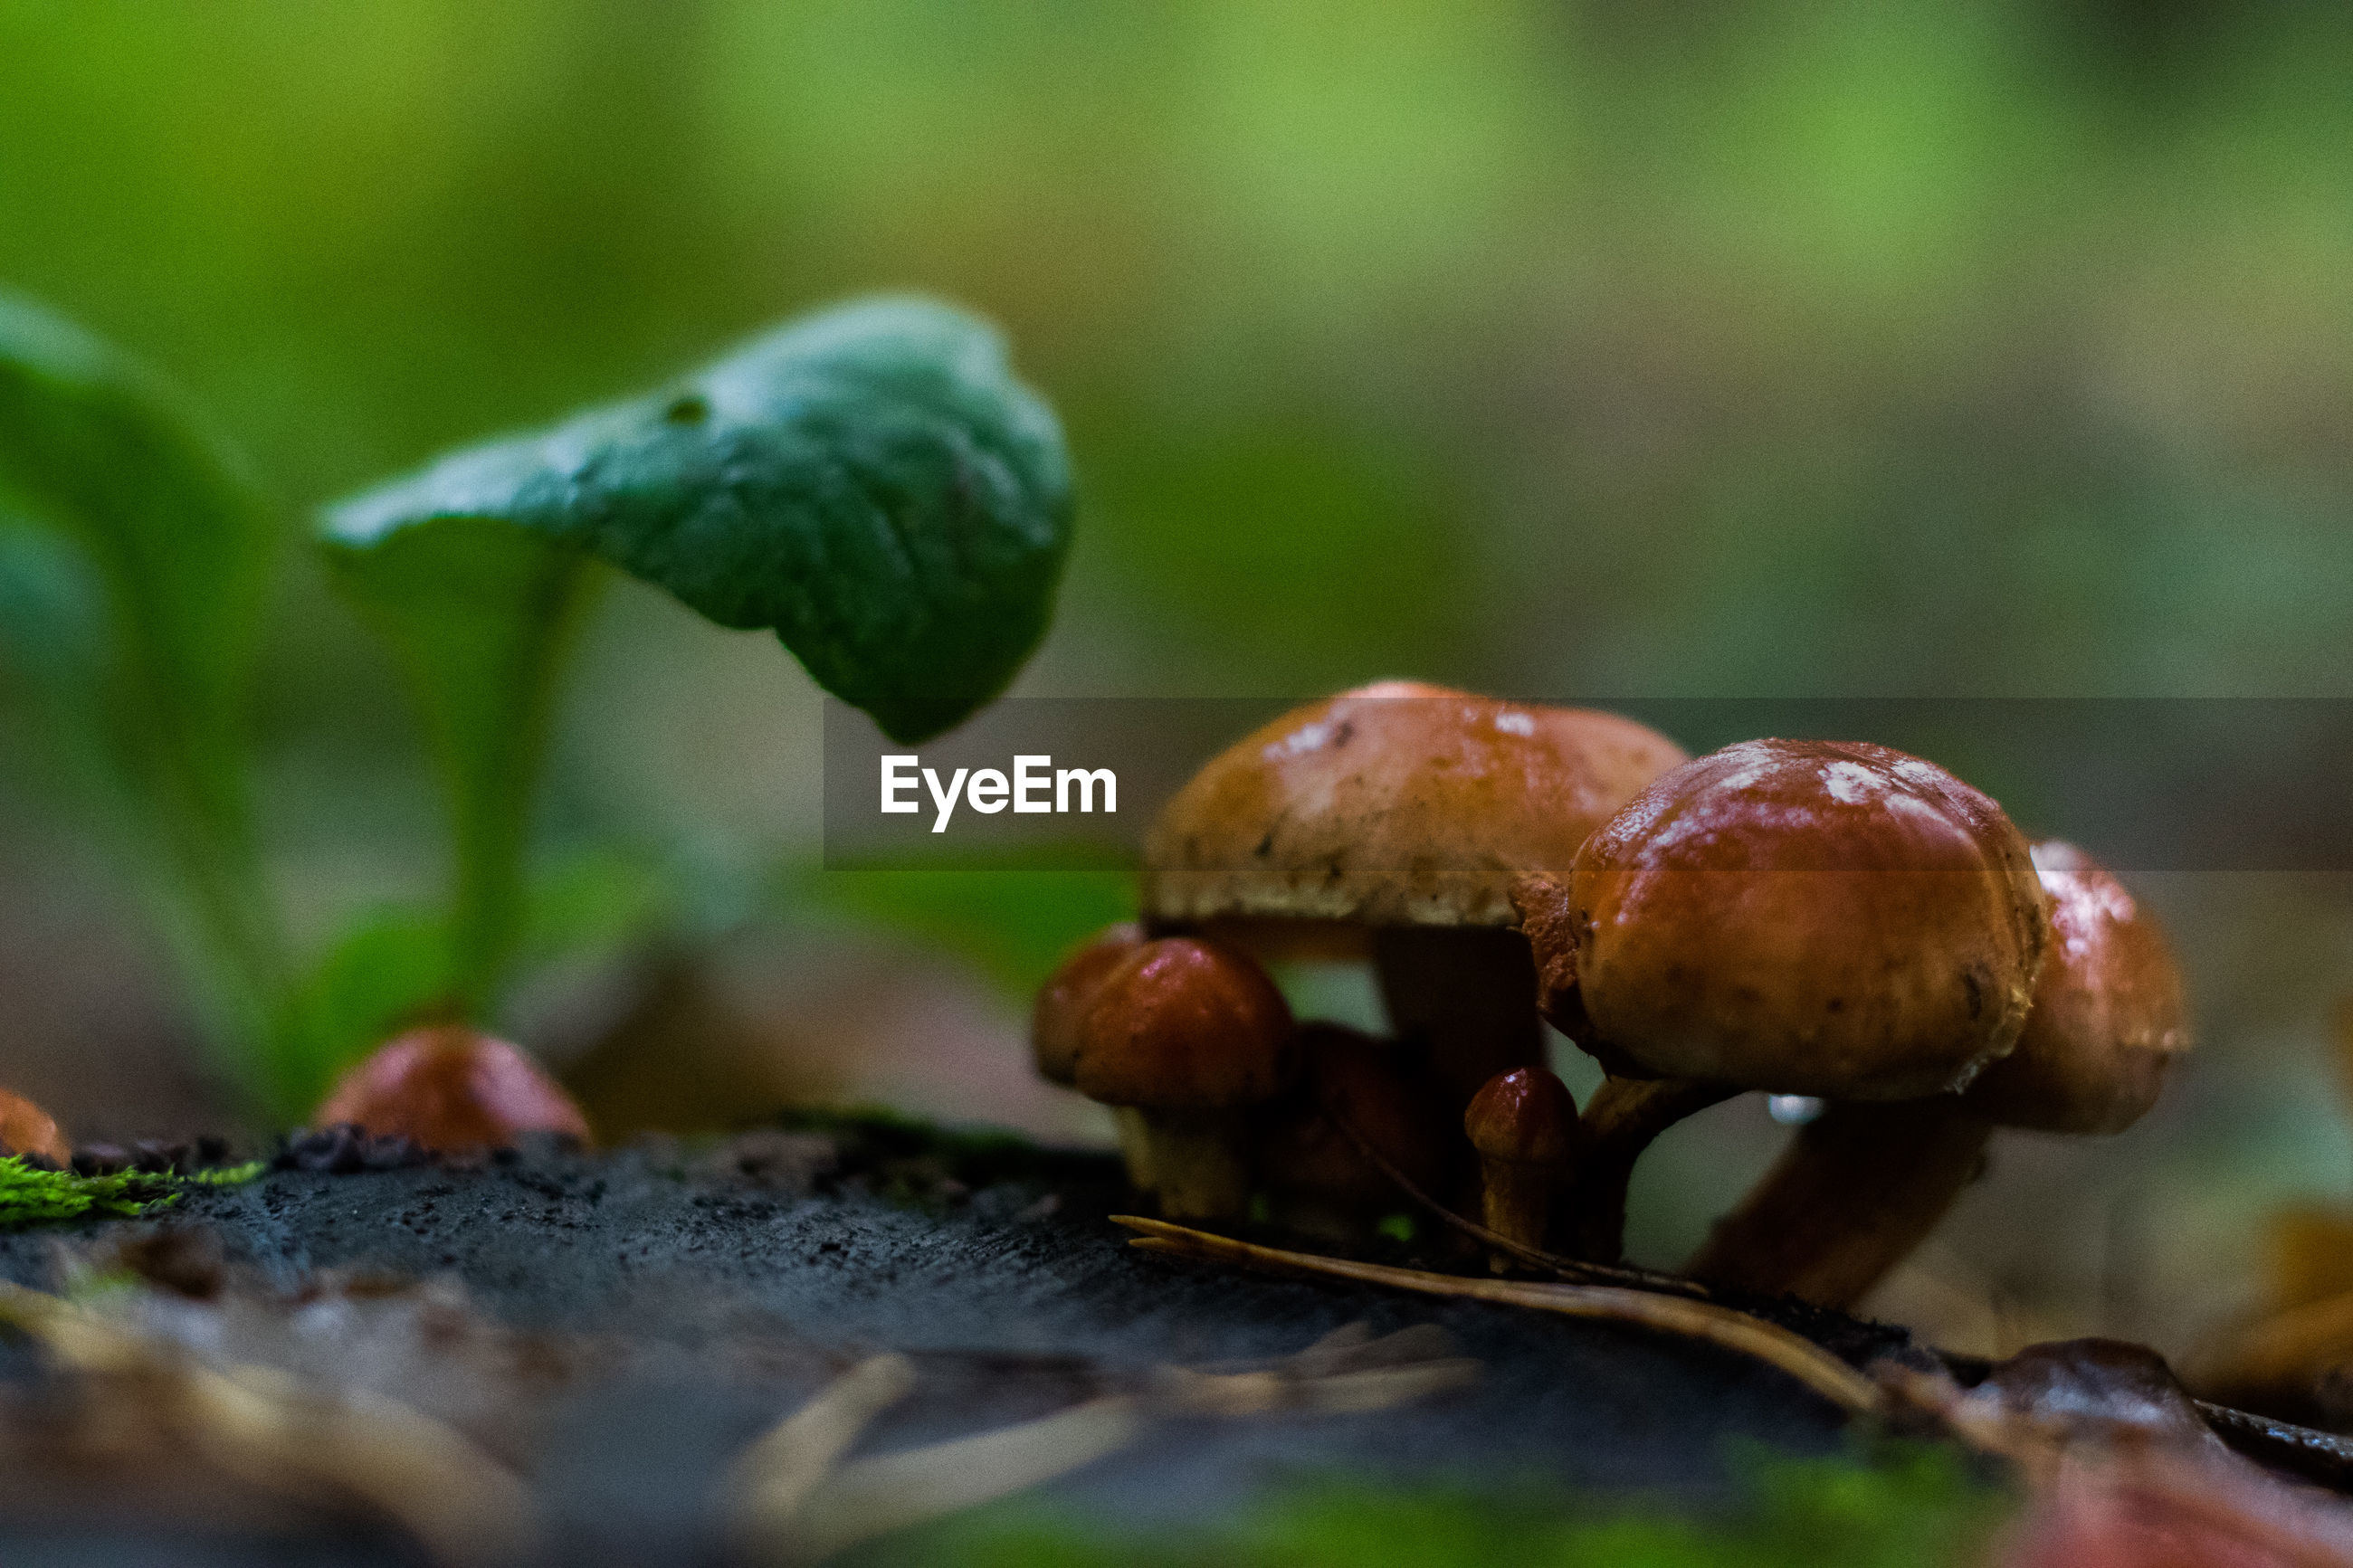 Close-up of wet mushrooms growing in forest